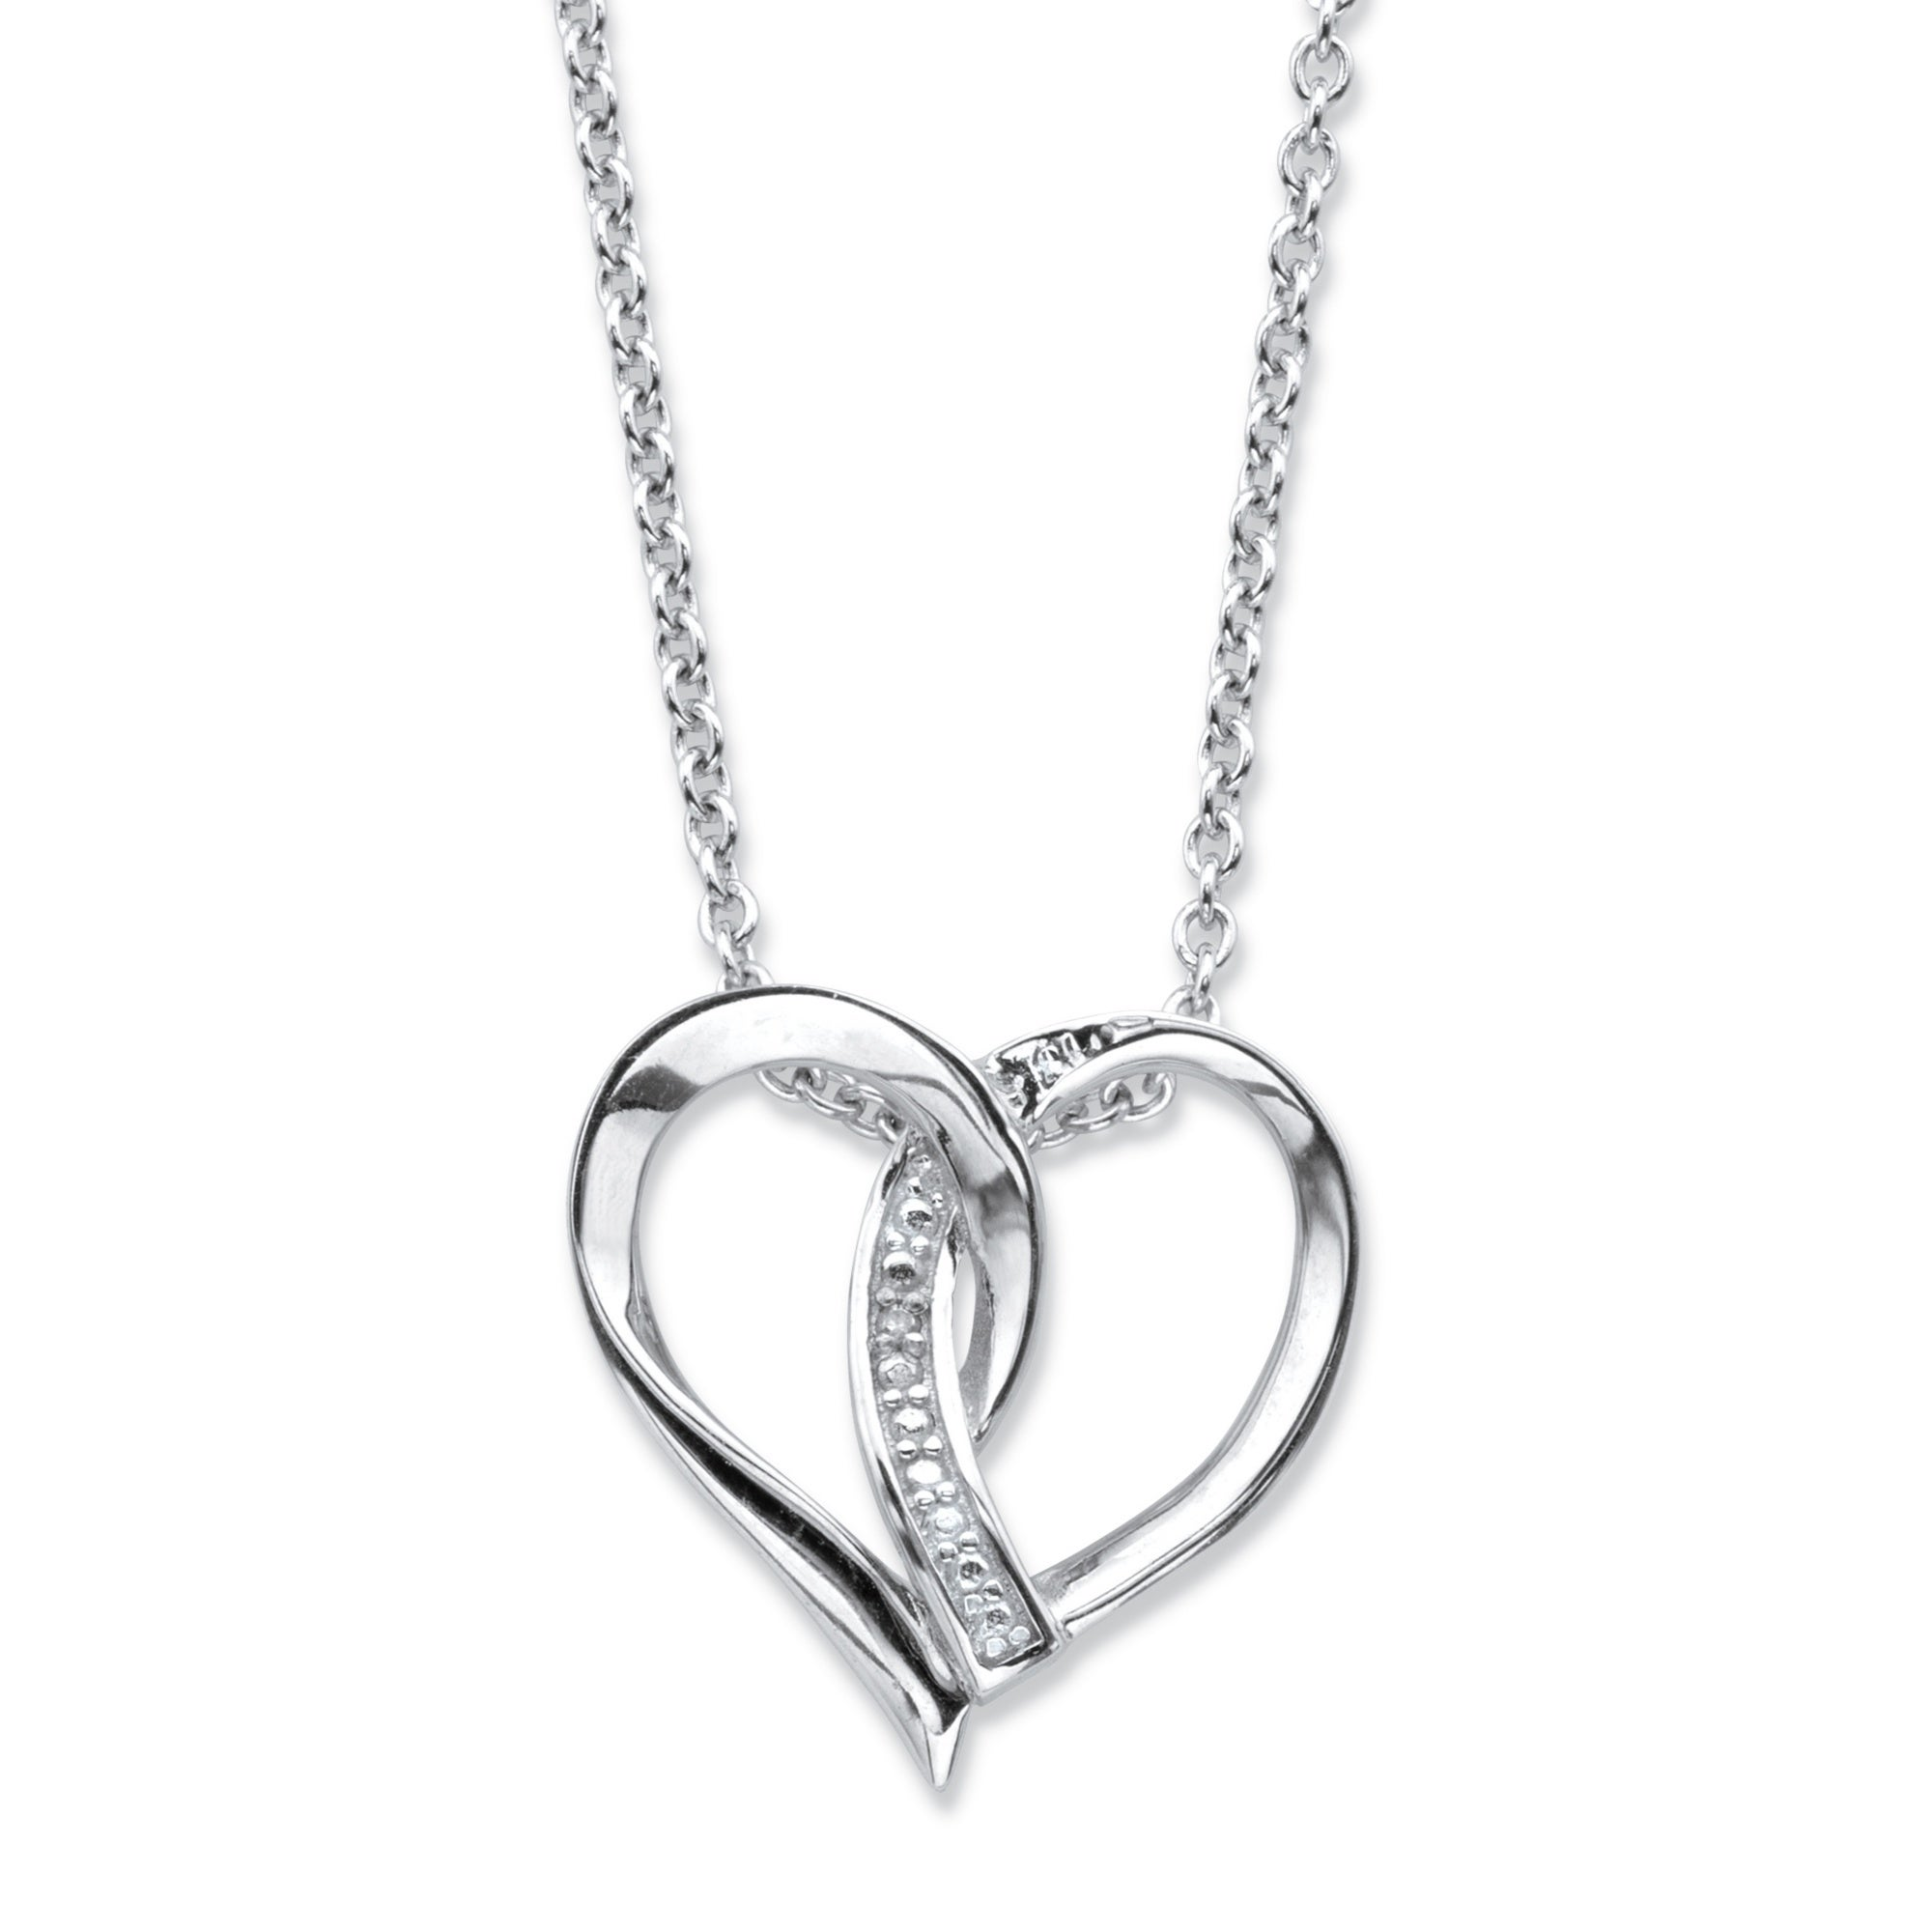 Rose Gold Plated Sterling Silver 2 Hearts Necklace CZ Accent 18-20 inch